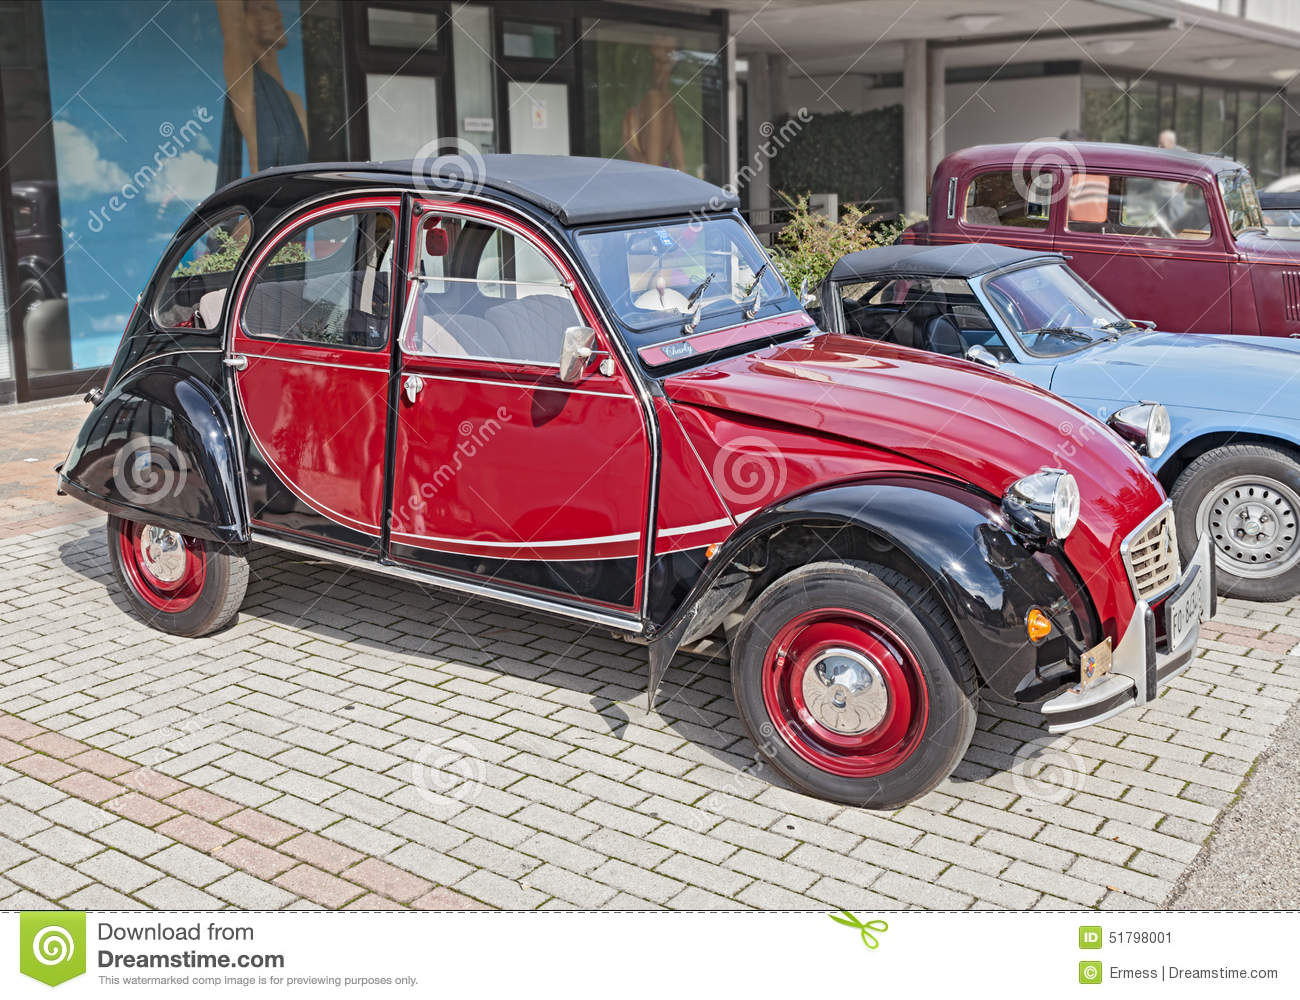 voiture fran aise citroen 2cv charleston de vintage photo ditorial image 51798001. Black Bedroom Furniture Sets. Home Design Ideas